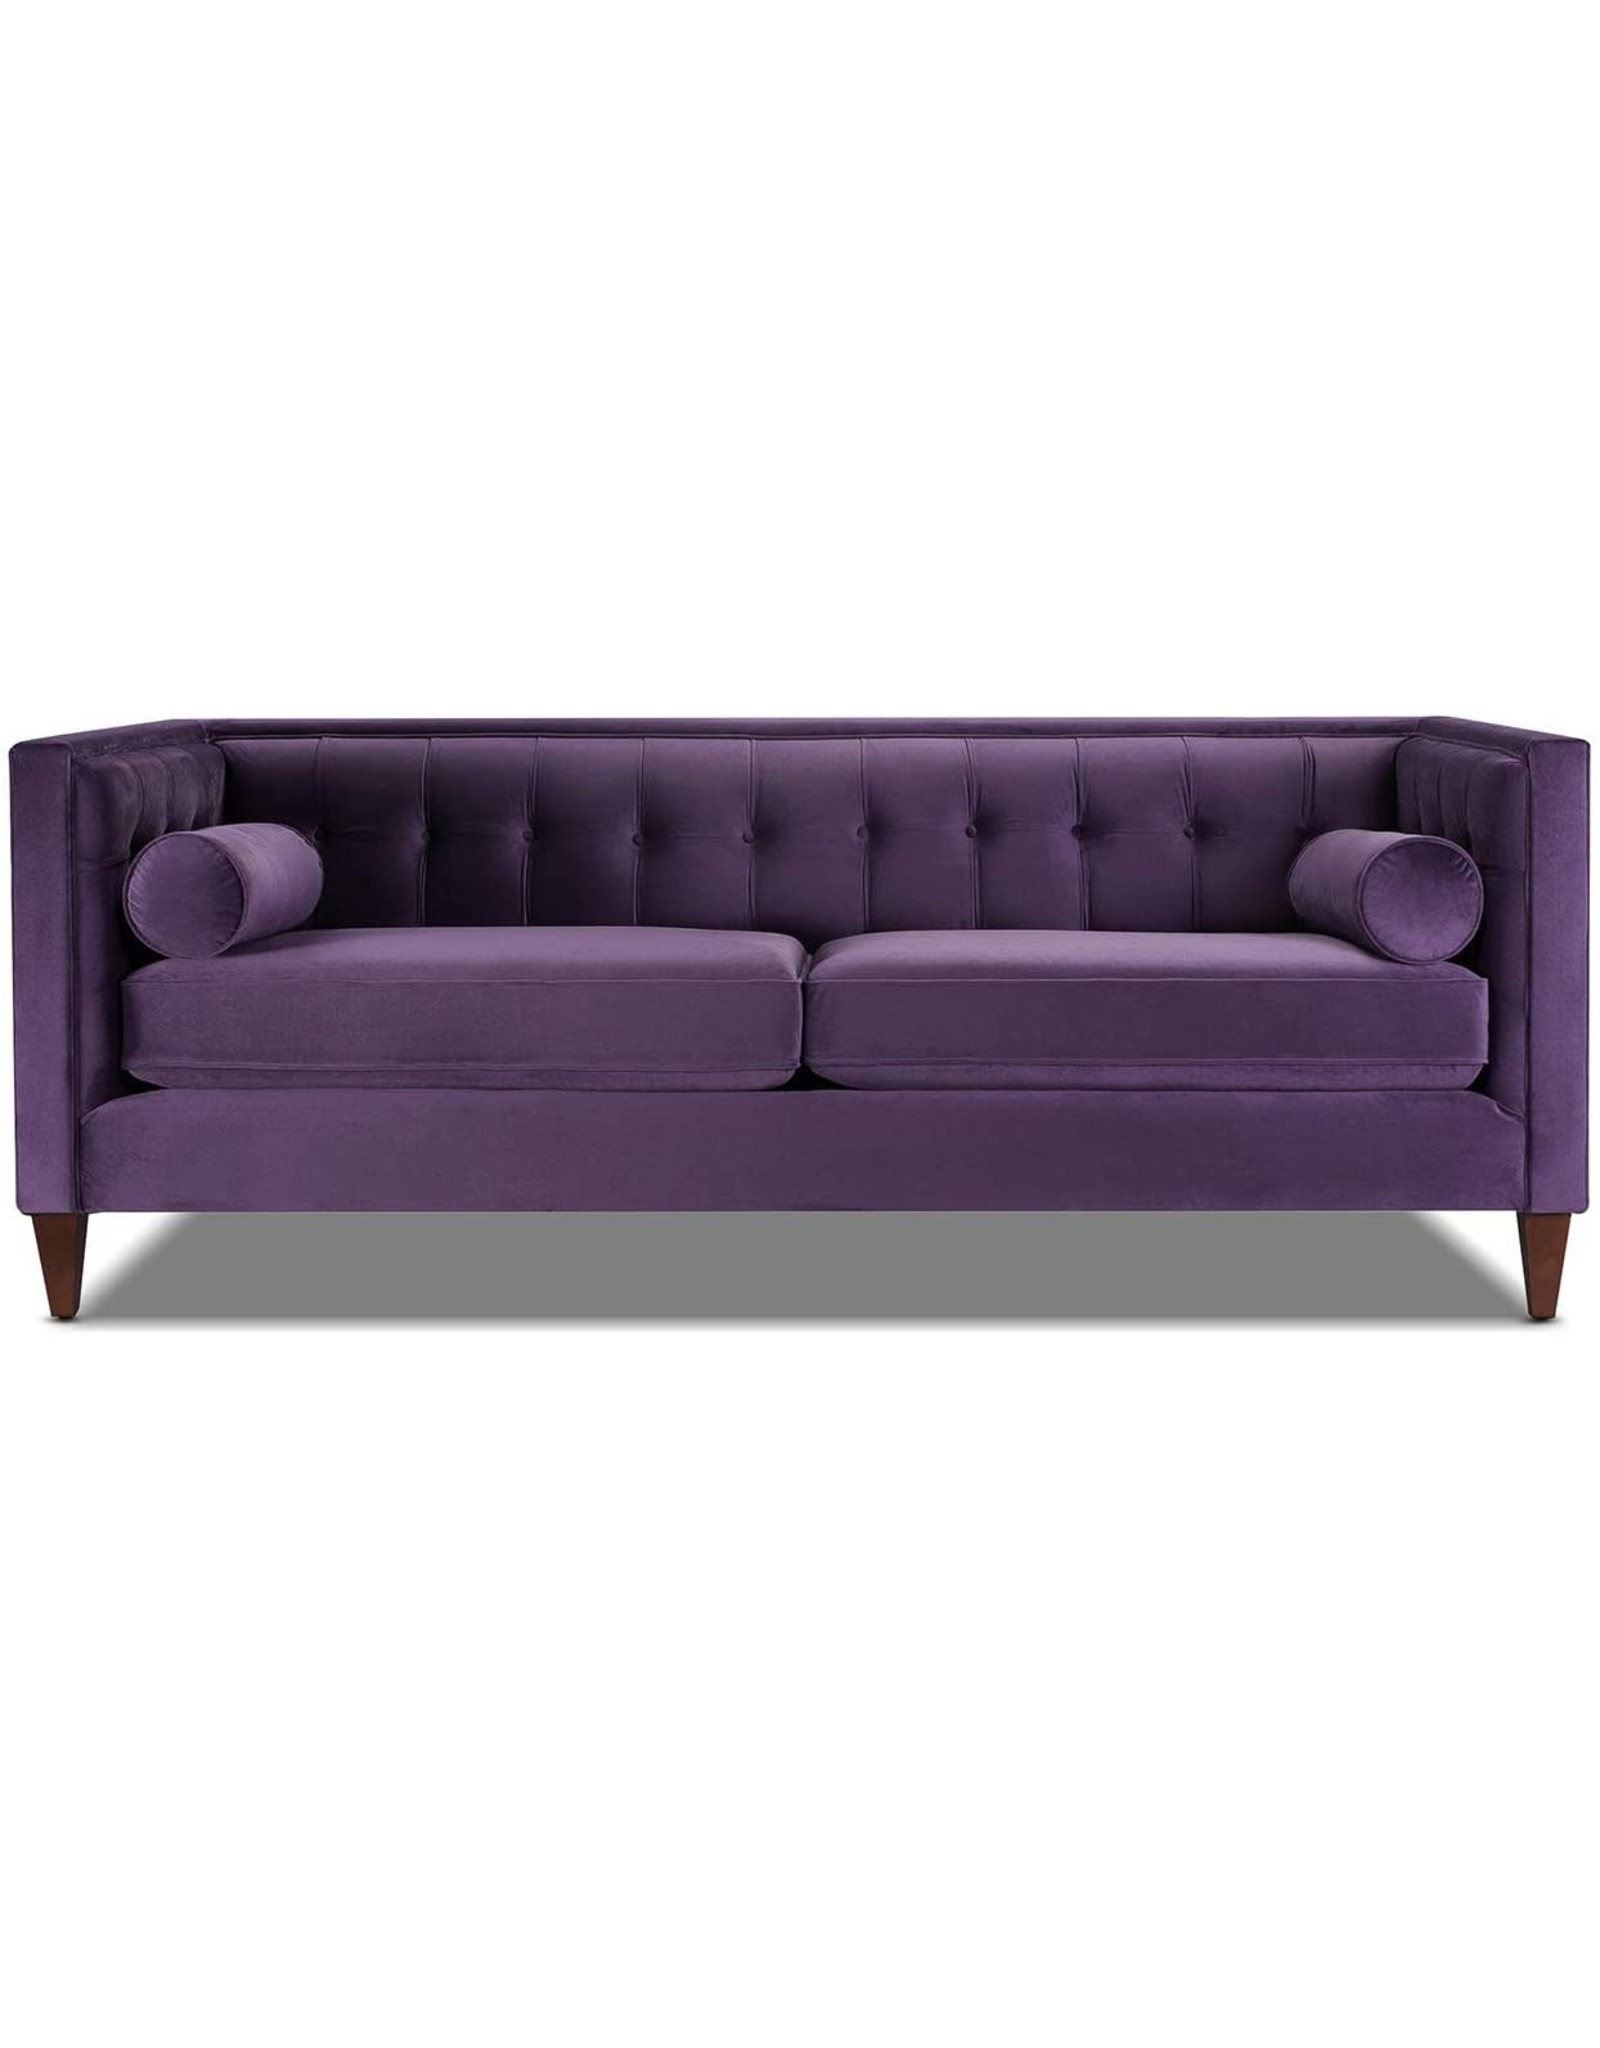 Jennifer Taylor Jennifer Taylor Home Jack Collection Modern Hand Tufted Upholstered Sofa With 2 Bolster Pillows and Hand Finish Legs, Purple